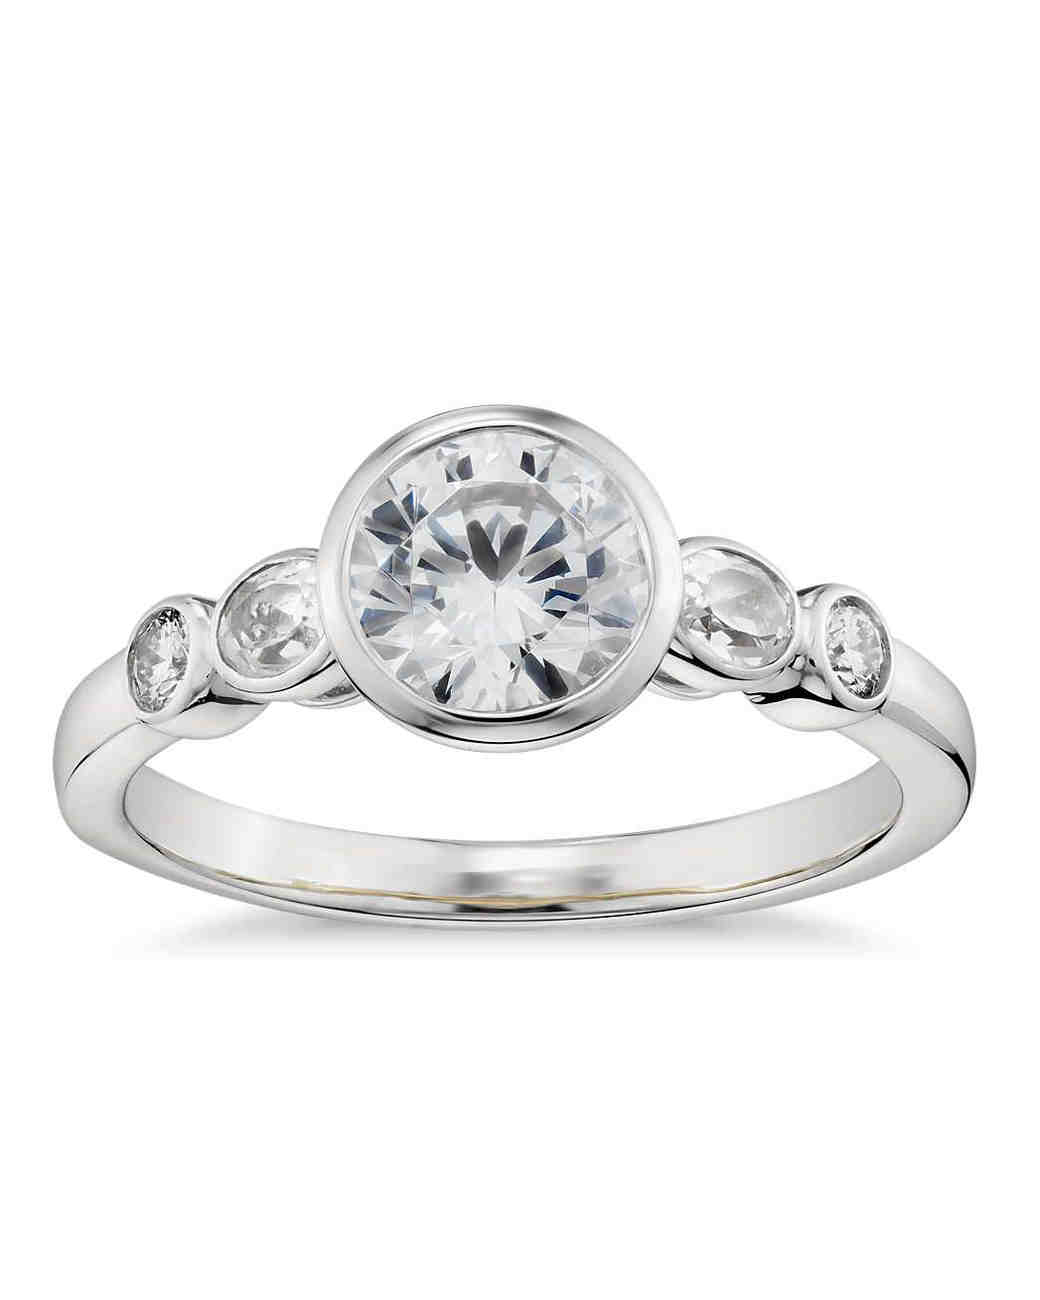 best new engagement ring designers know now wedding ring designers 21 Best New Engagement Ring Designers to Know Now Martha Stewart Weddings